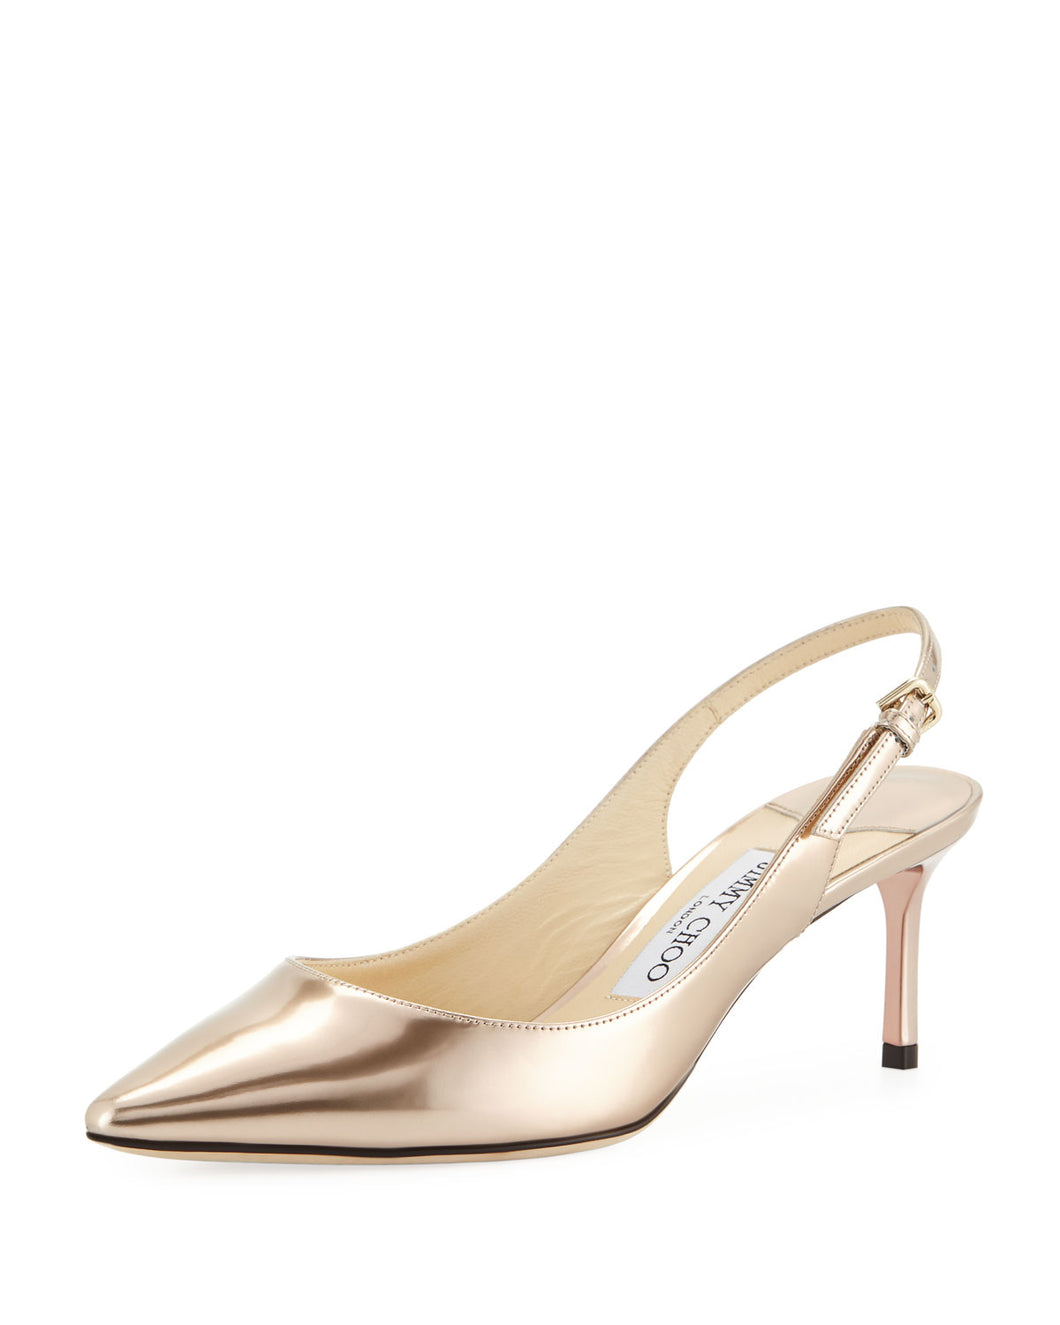 Erin Liquid Metallic Slingback 60mm Pumps - Ballet Pink